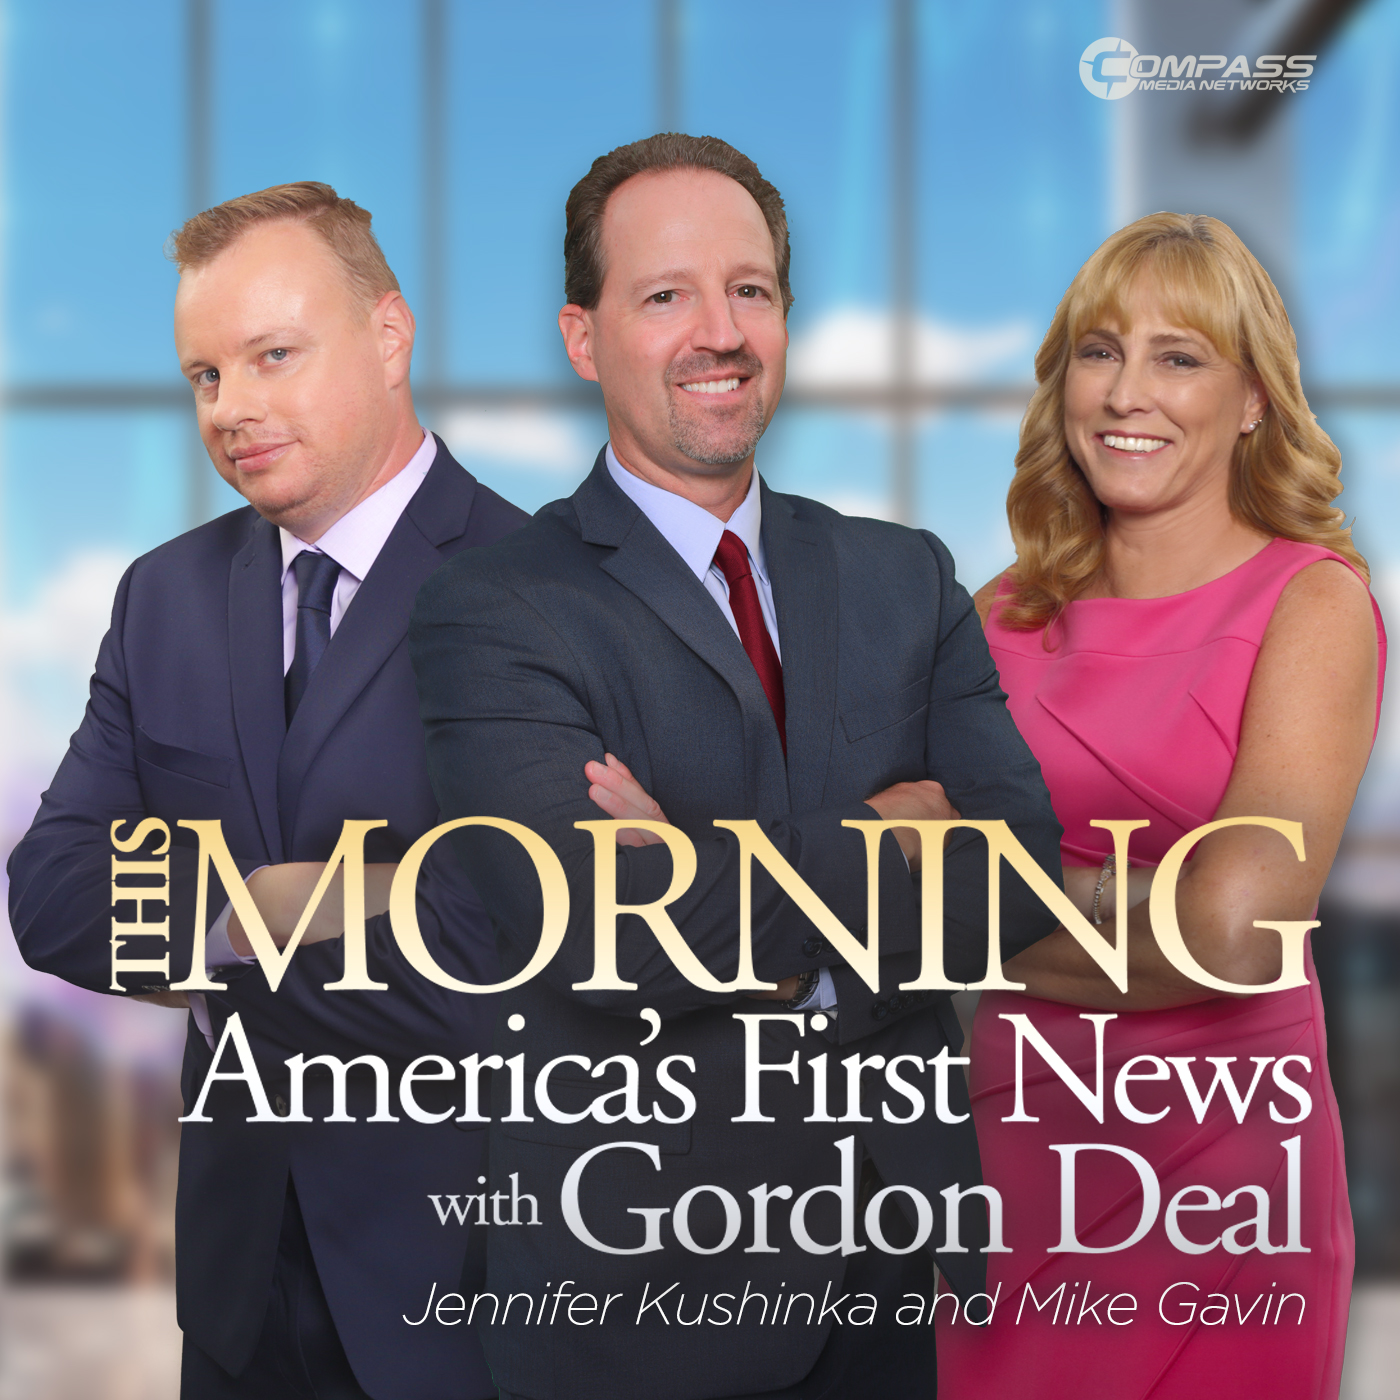 This Morning—America's First News with Gordon Deal